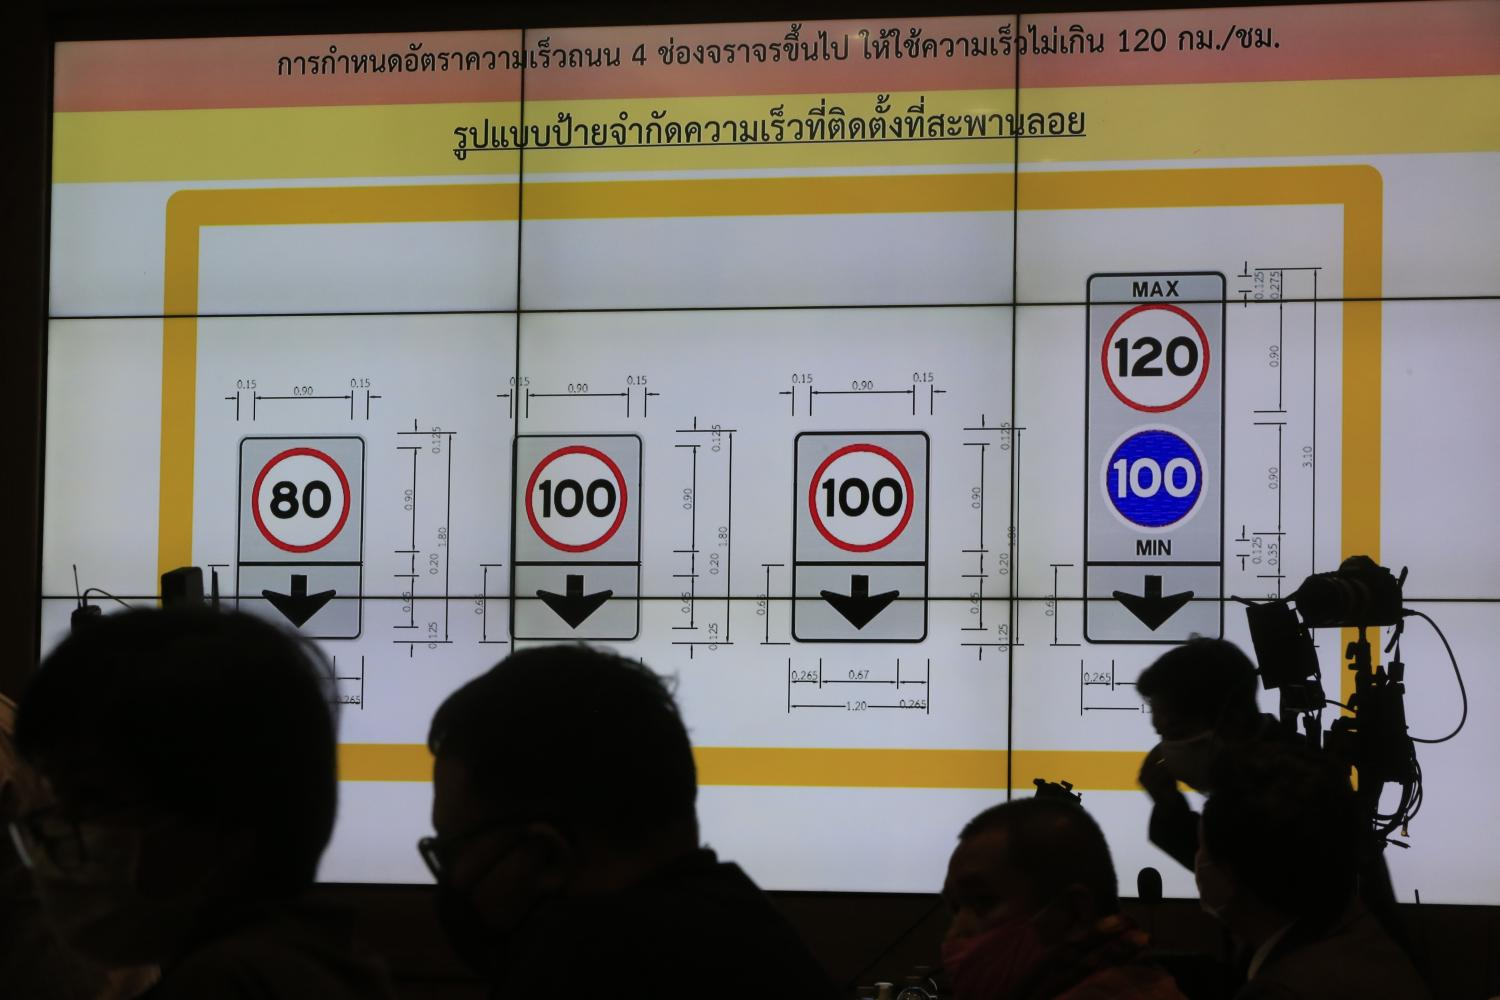 A visual presentation at the Transport Ministry shows newly-imposed speed limits. A new regulation requires drivers of private vehicles using the outermost lane of highways to drive at speeds of no less than 100 kilometres per hour but no more than 120km/h.(Photo by Pornprom Satrabhaya)